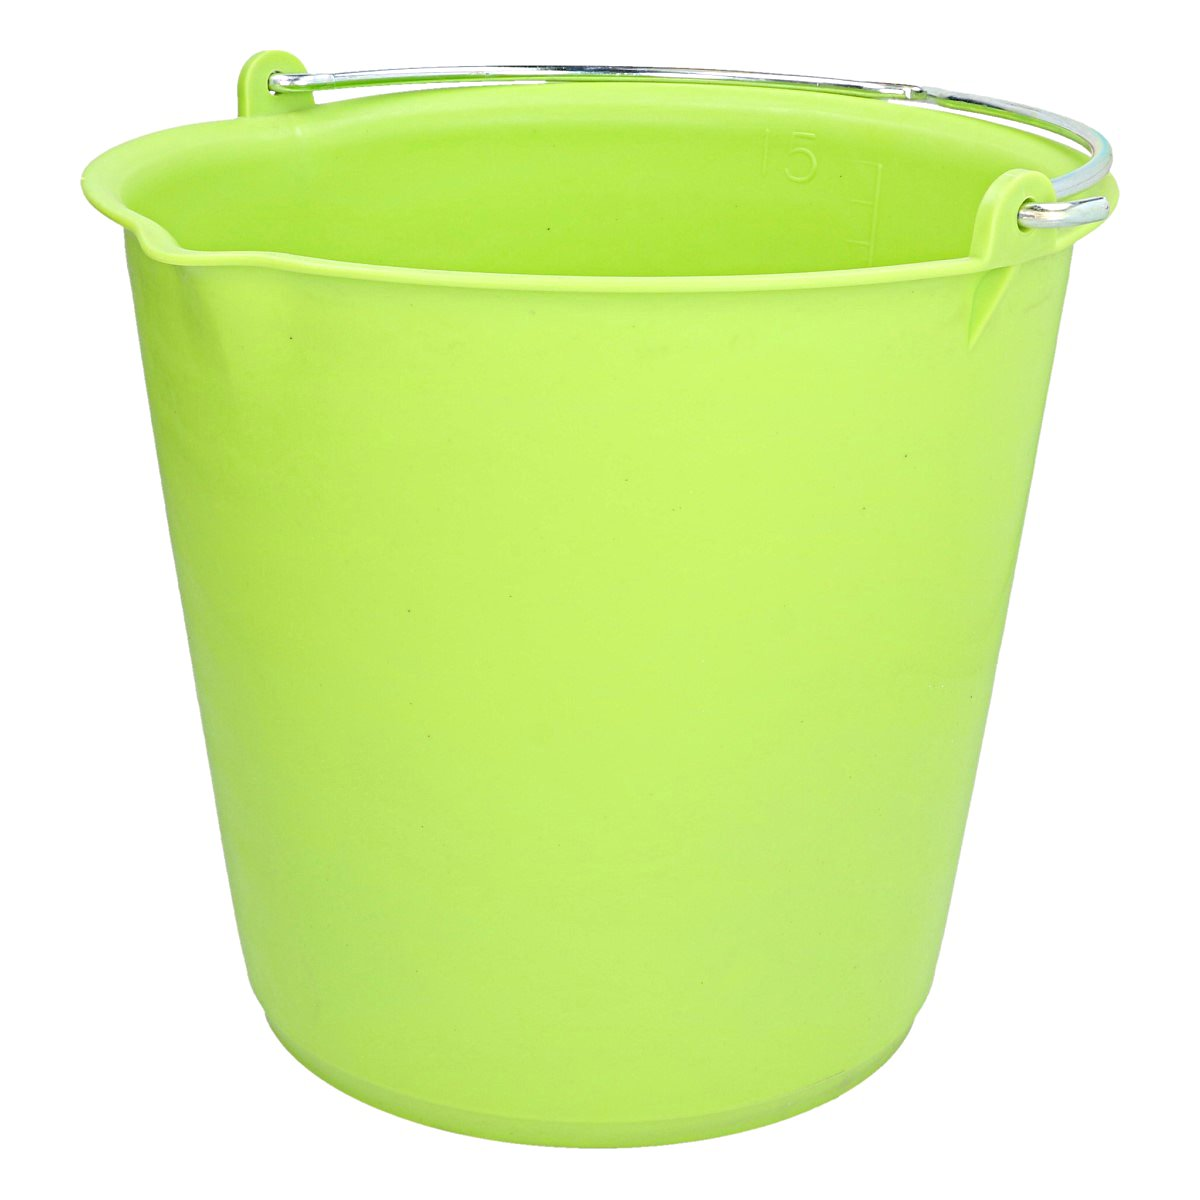 Imagem de Agradi Bucket measurement scale + pouring spout Lightgreen